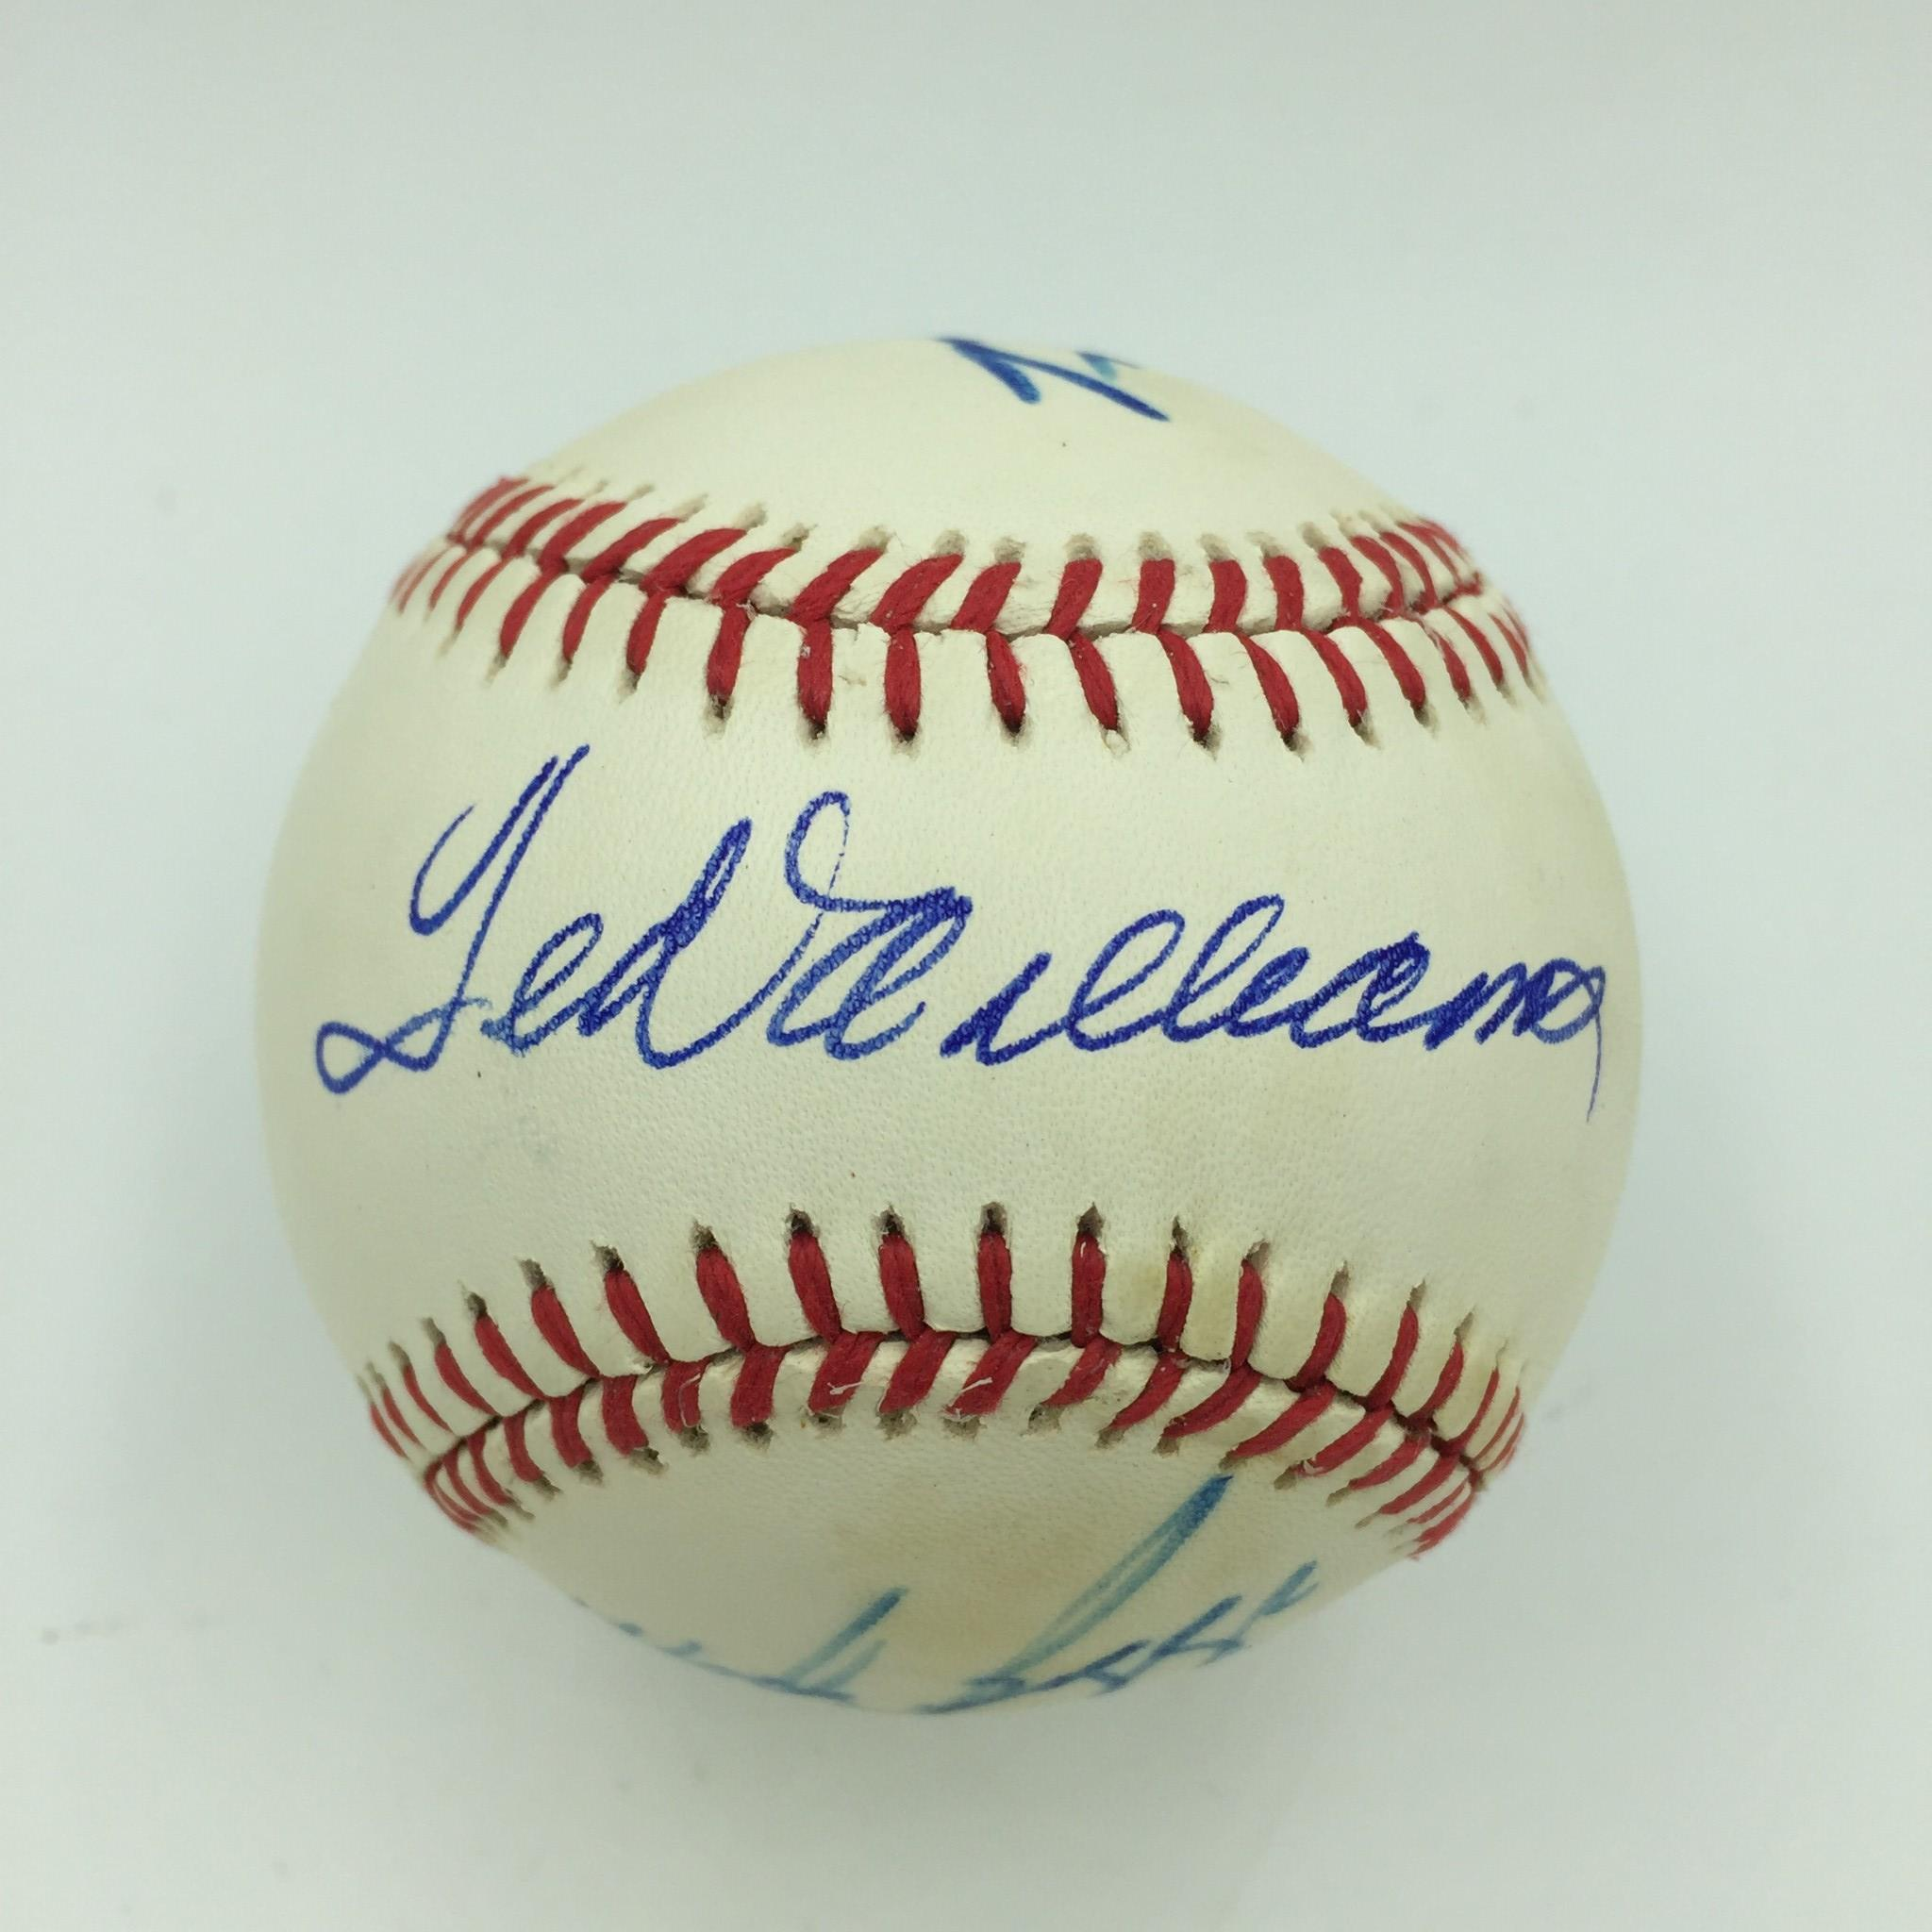 Details About Ted Williams Carl Yastrzemski Wade Boggs Jim Rice Red Sox Signed Baseball Jsa